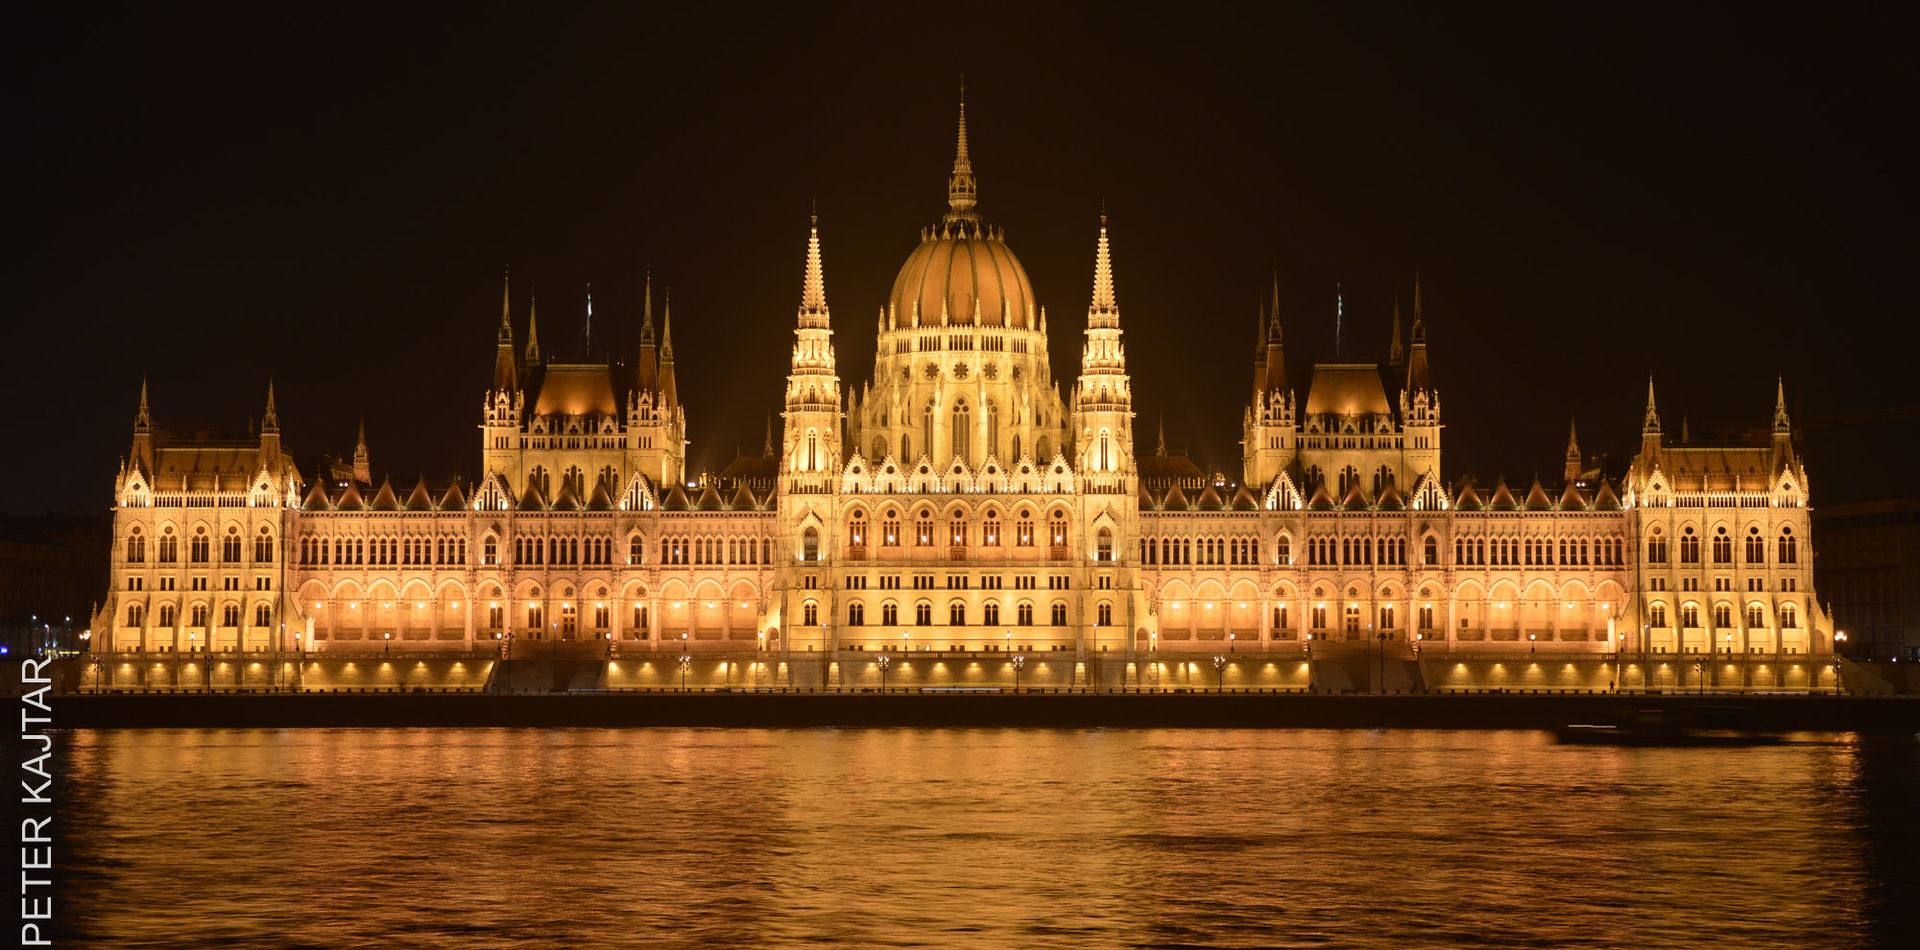 Parlament with reflection